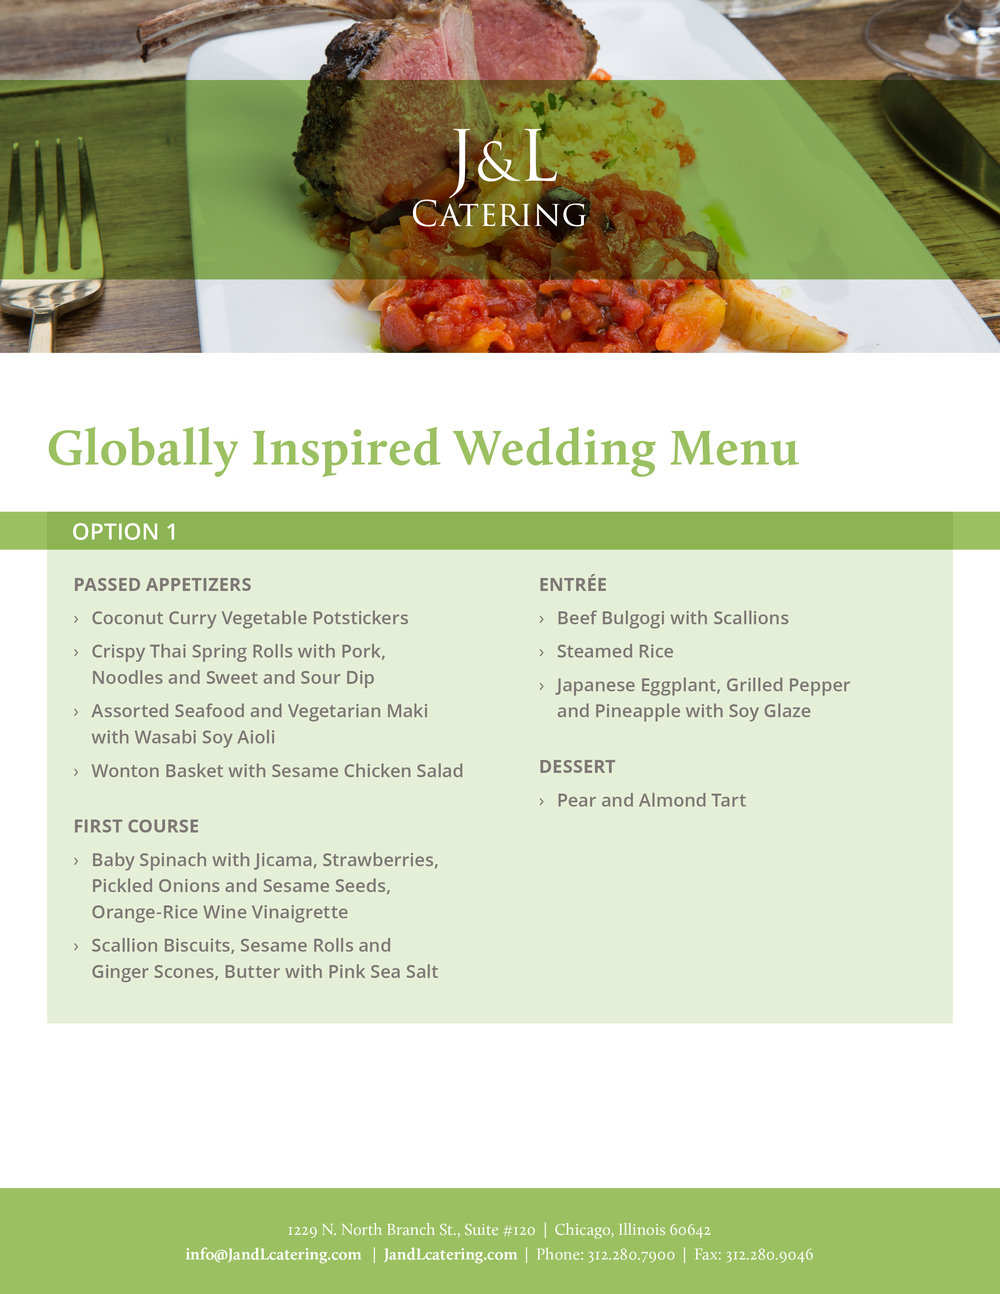 J&L_WeddingGloballyInspiredMenu-1.jpg